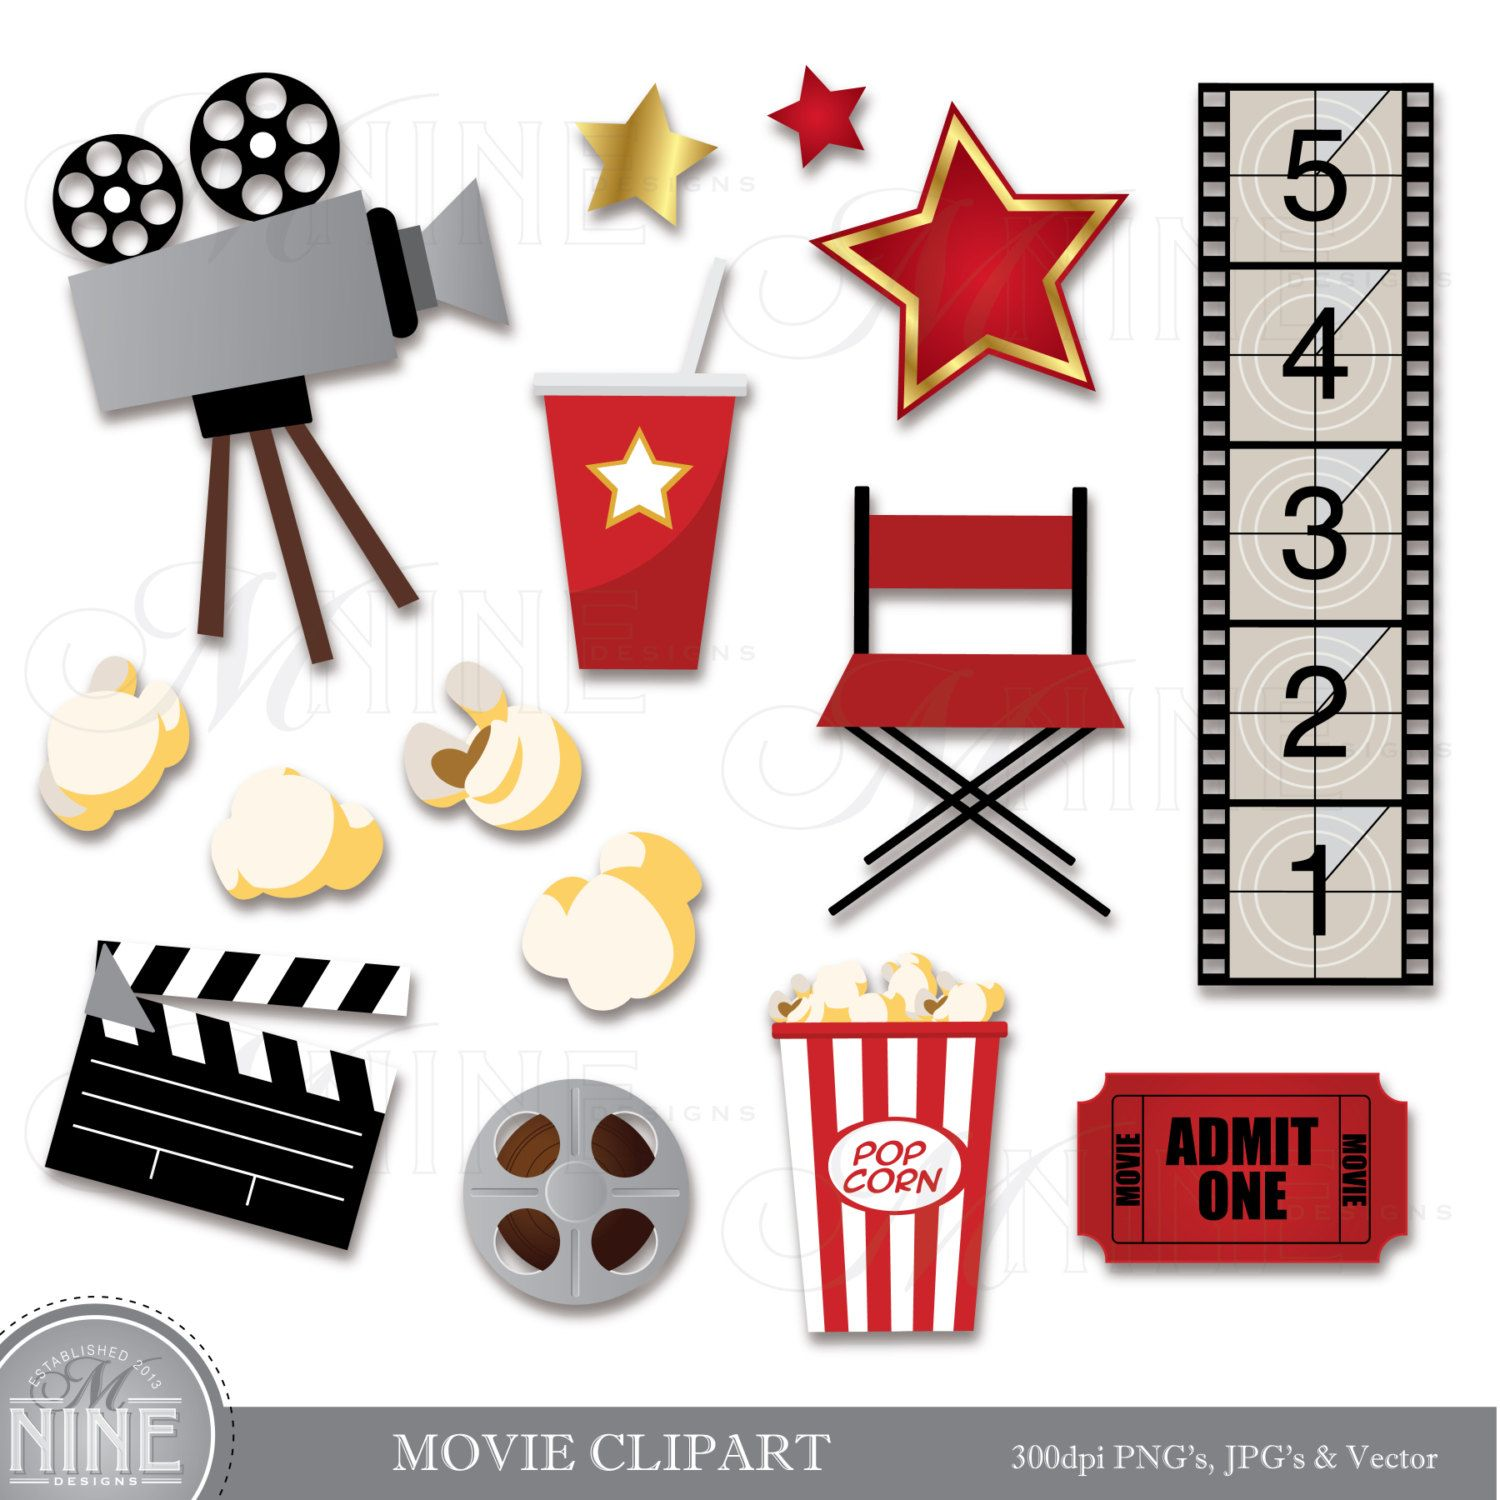 clip black and white stock Clip art download theater. Cinema clipart movie party.